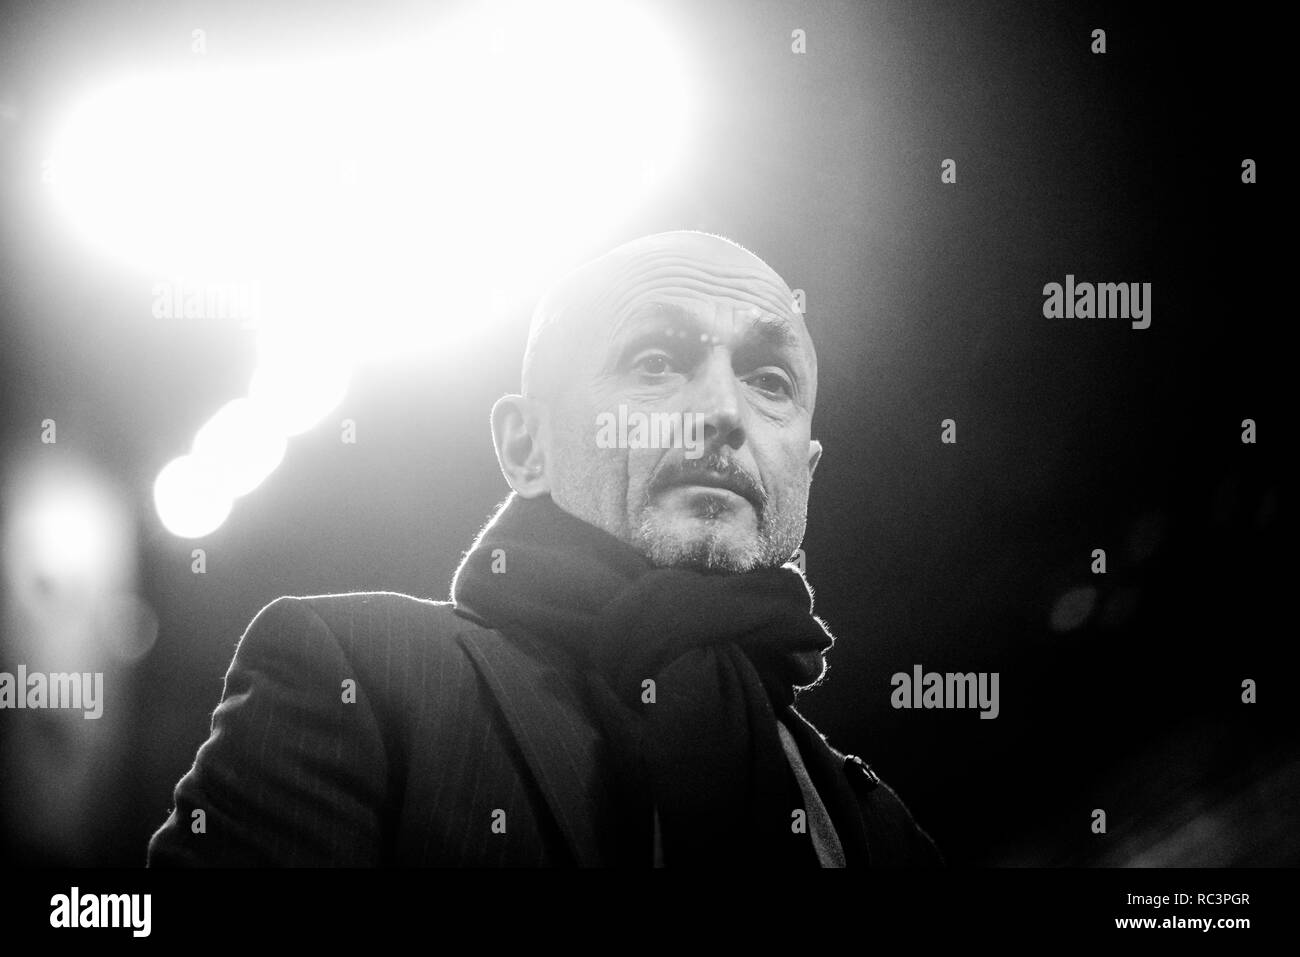 Black and White image of Team manager Luciano Spalletti (Inter) looking on during the Italian Cup 'Coppa Italia' football match, Inter Milan vs Benevento Calcio at San Siro Meazza Stadium in Milan, Italy on 13 January 2019. The football match is played behind closed doors after Napoli's Senegalese player Kalidou Koulibaly was subject to racist chants by FC Internazionale's 'ultra' fans during the Boxing Day match. Credit: Piero Cruciatti/Alamy Live News - Stock Image